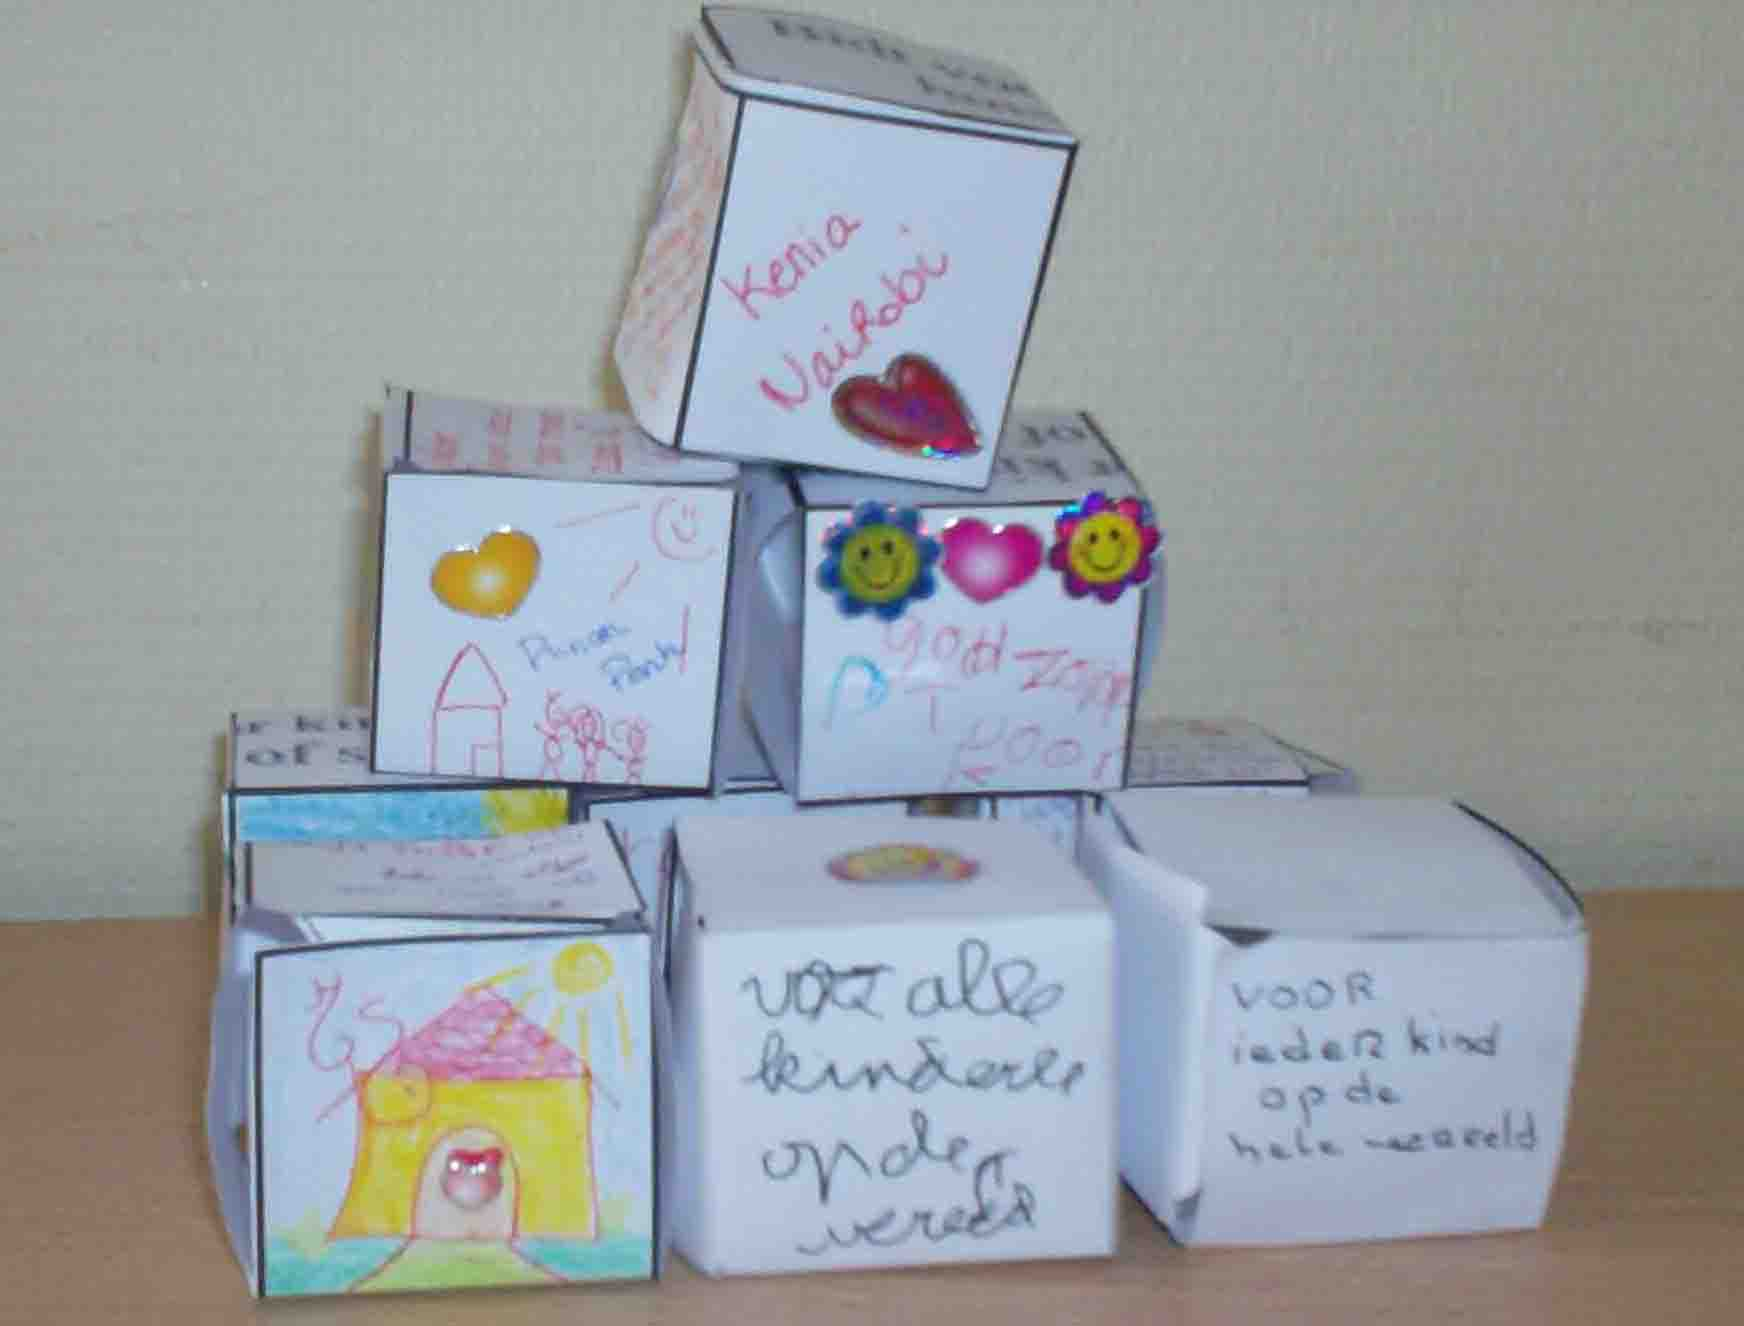 From a cross to a box for a homeless child